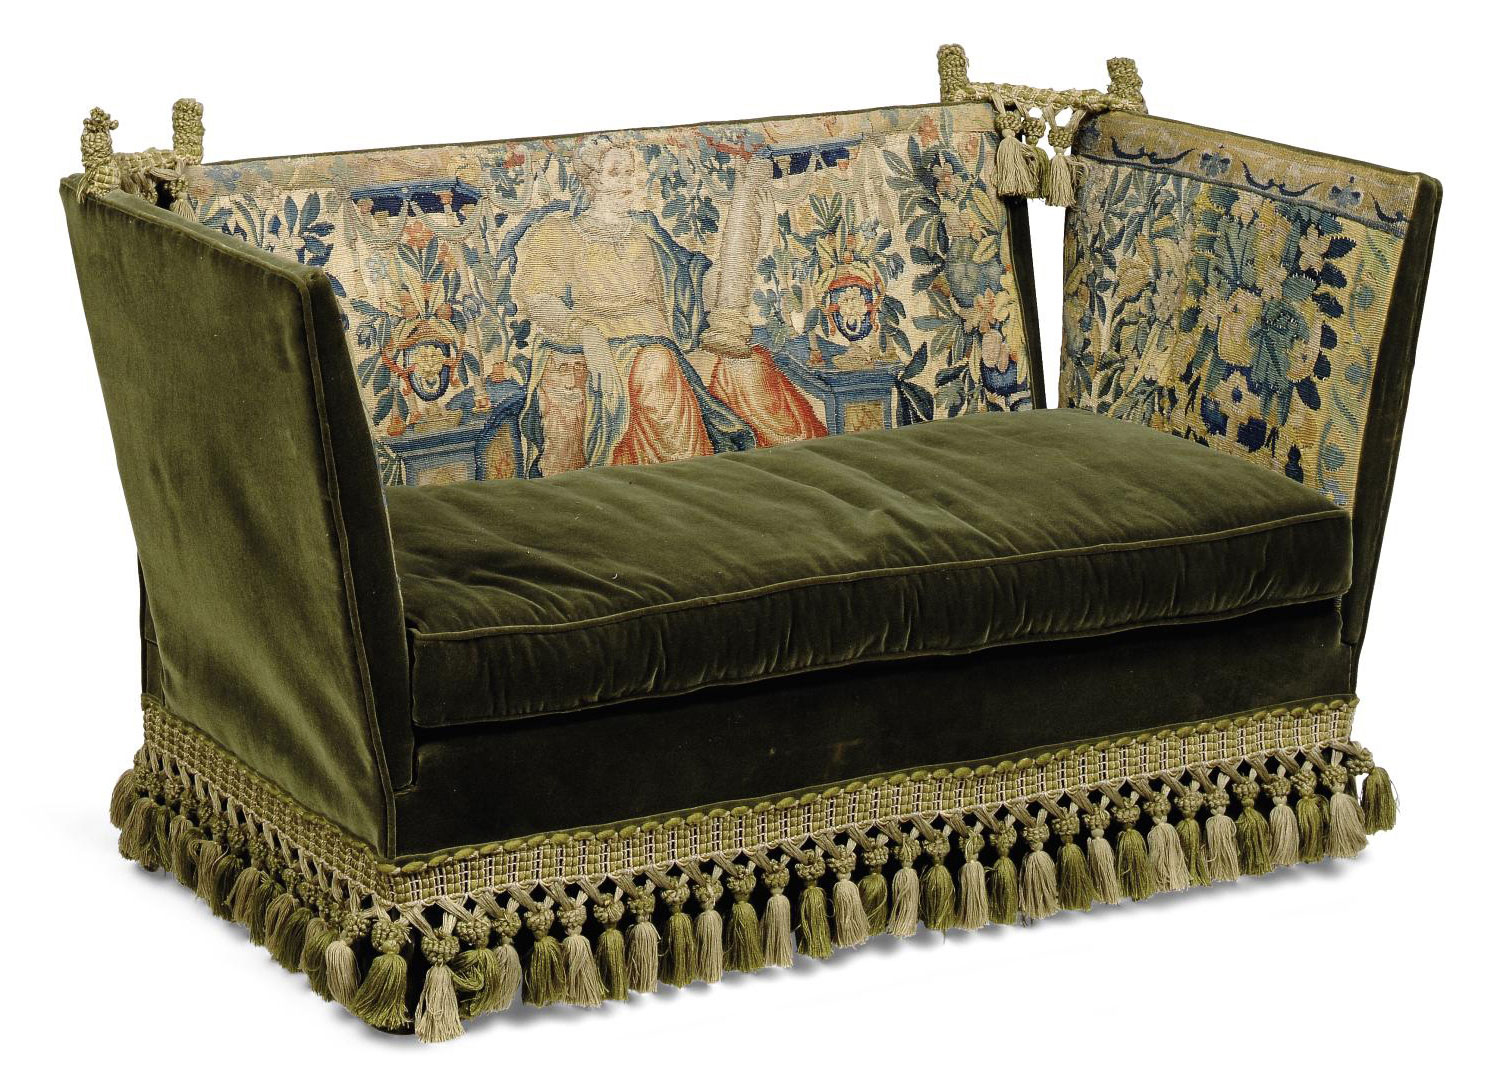 A Small Knole Sofa Early 20th Century